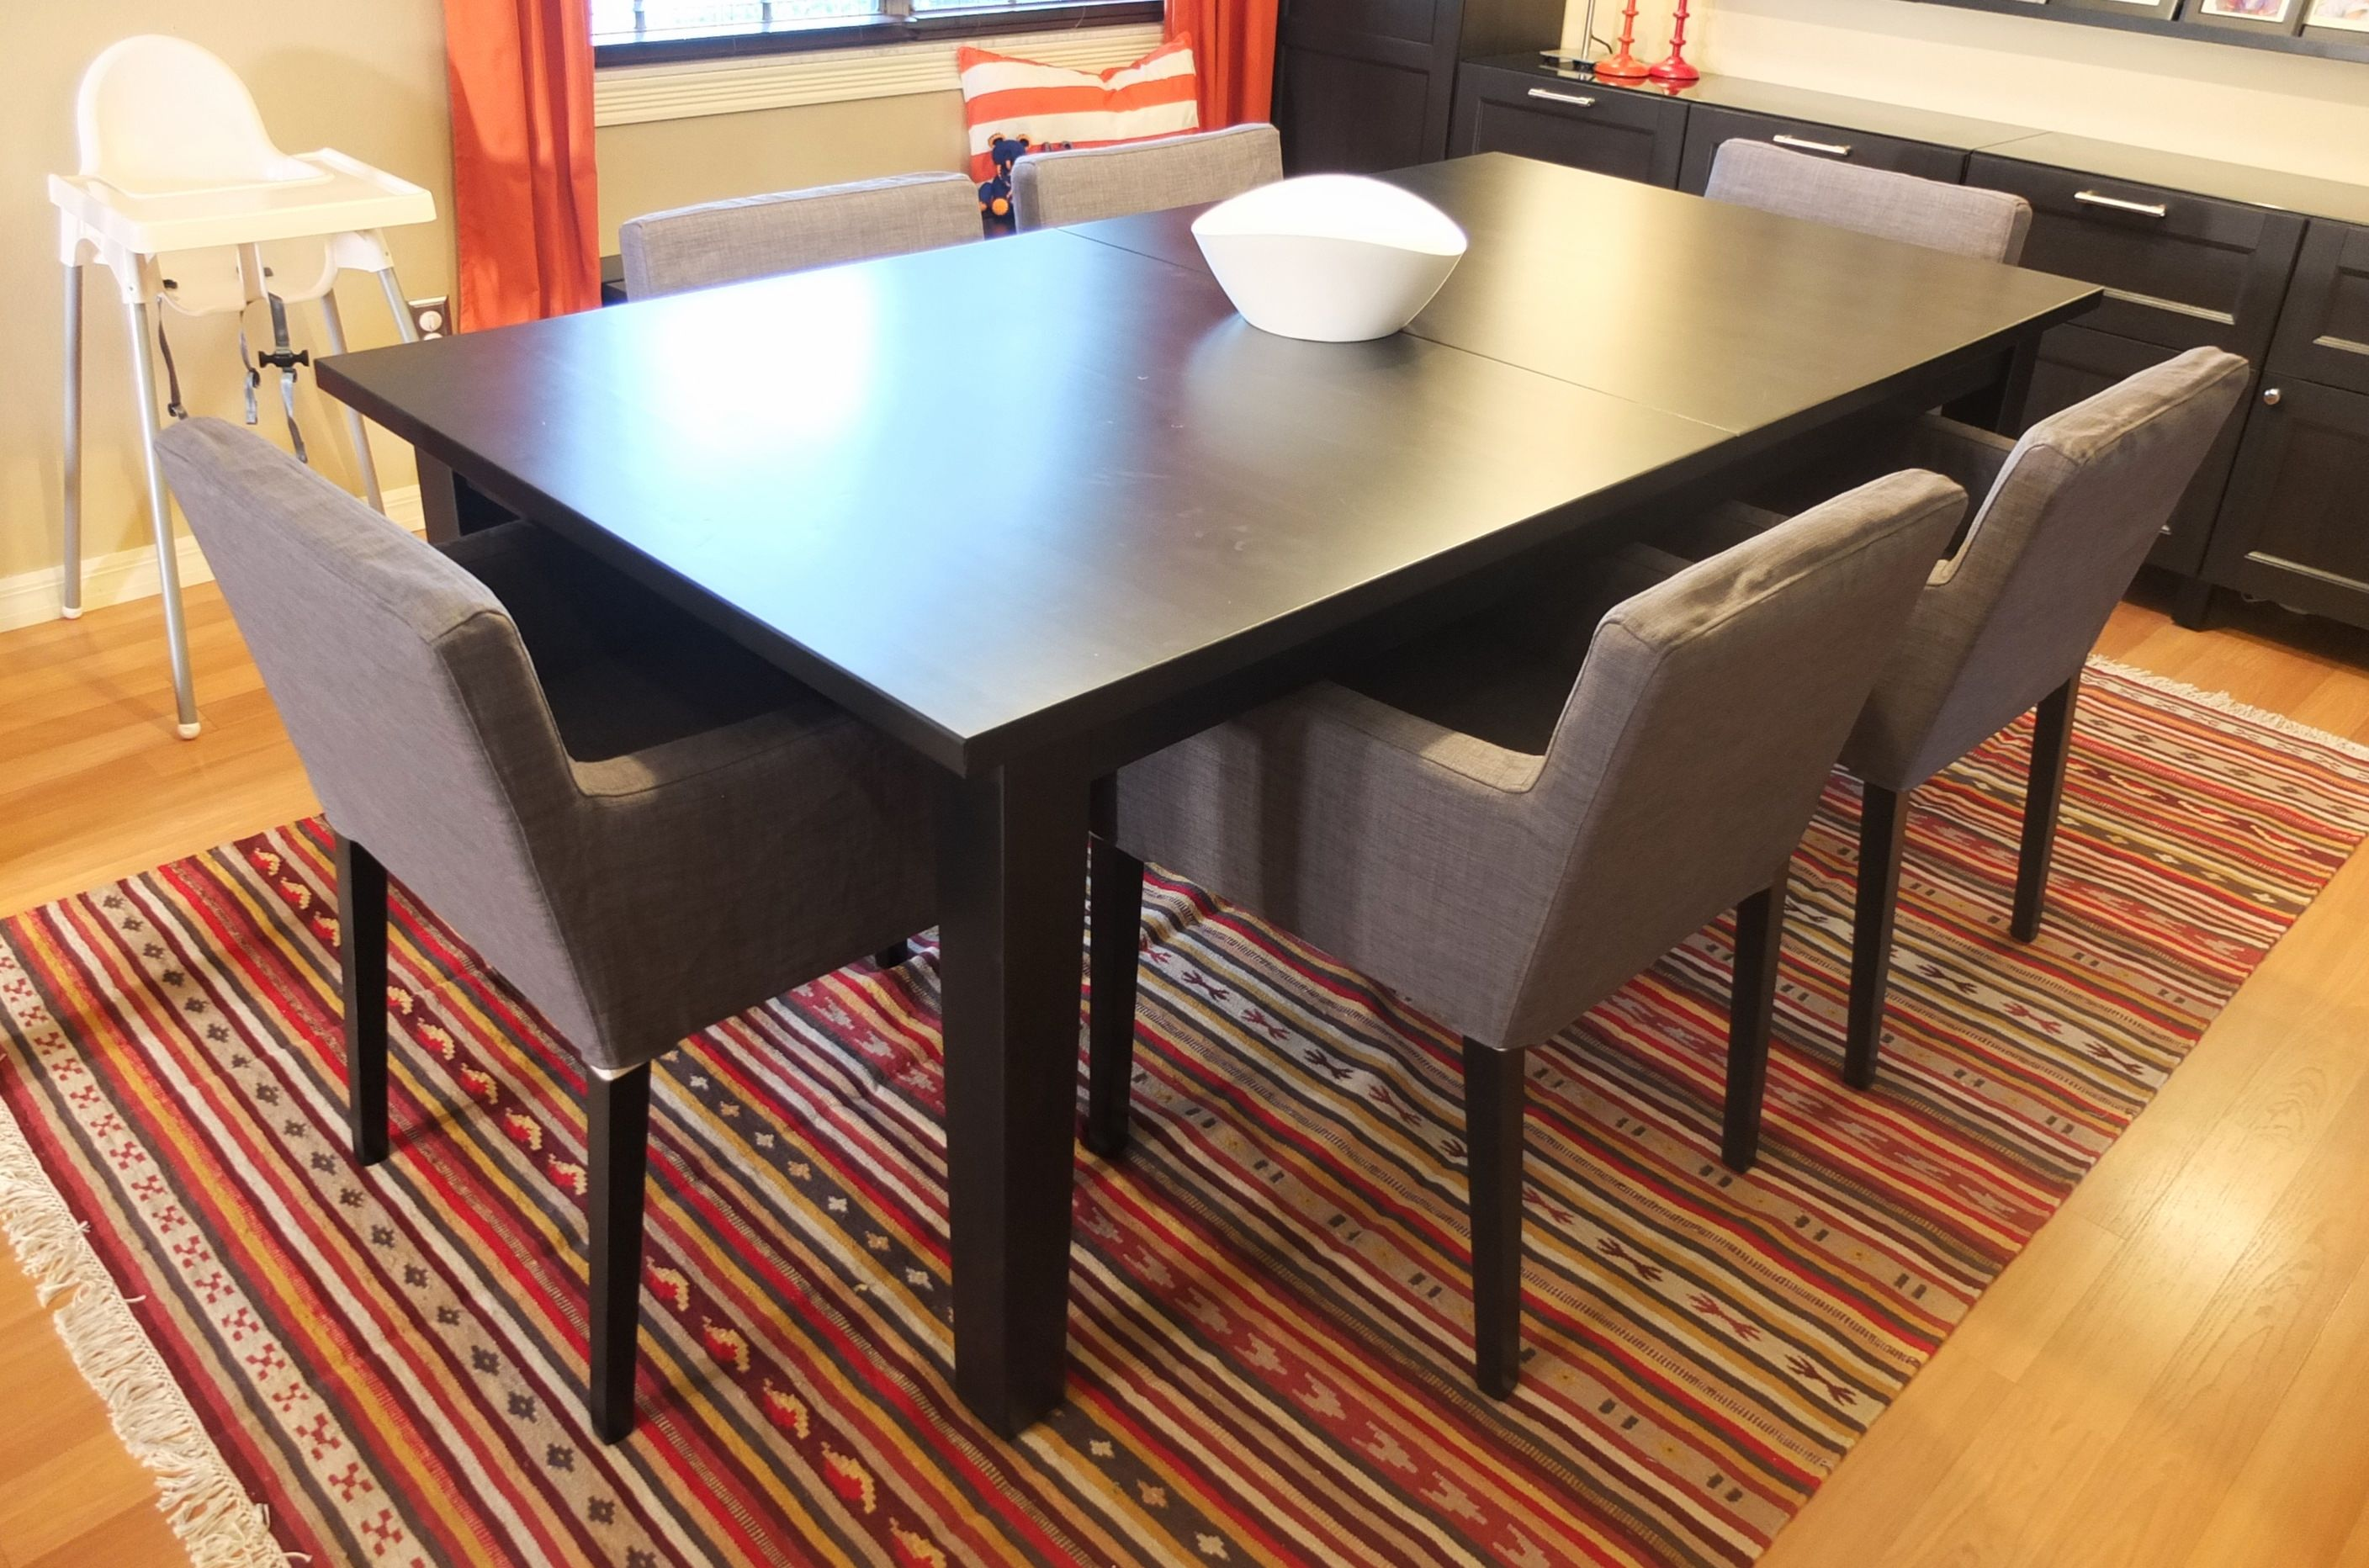 storn s extendable table brown black table seating leaves and room. Black Bedroom Furniture Sets. Home Design Ideas